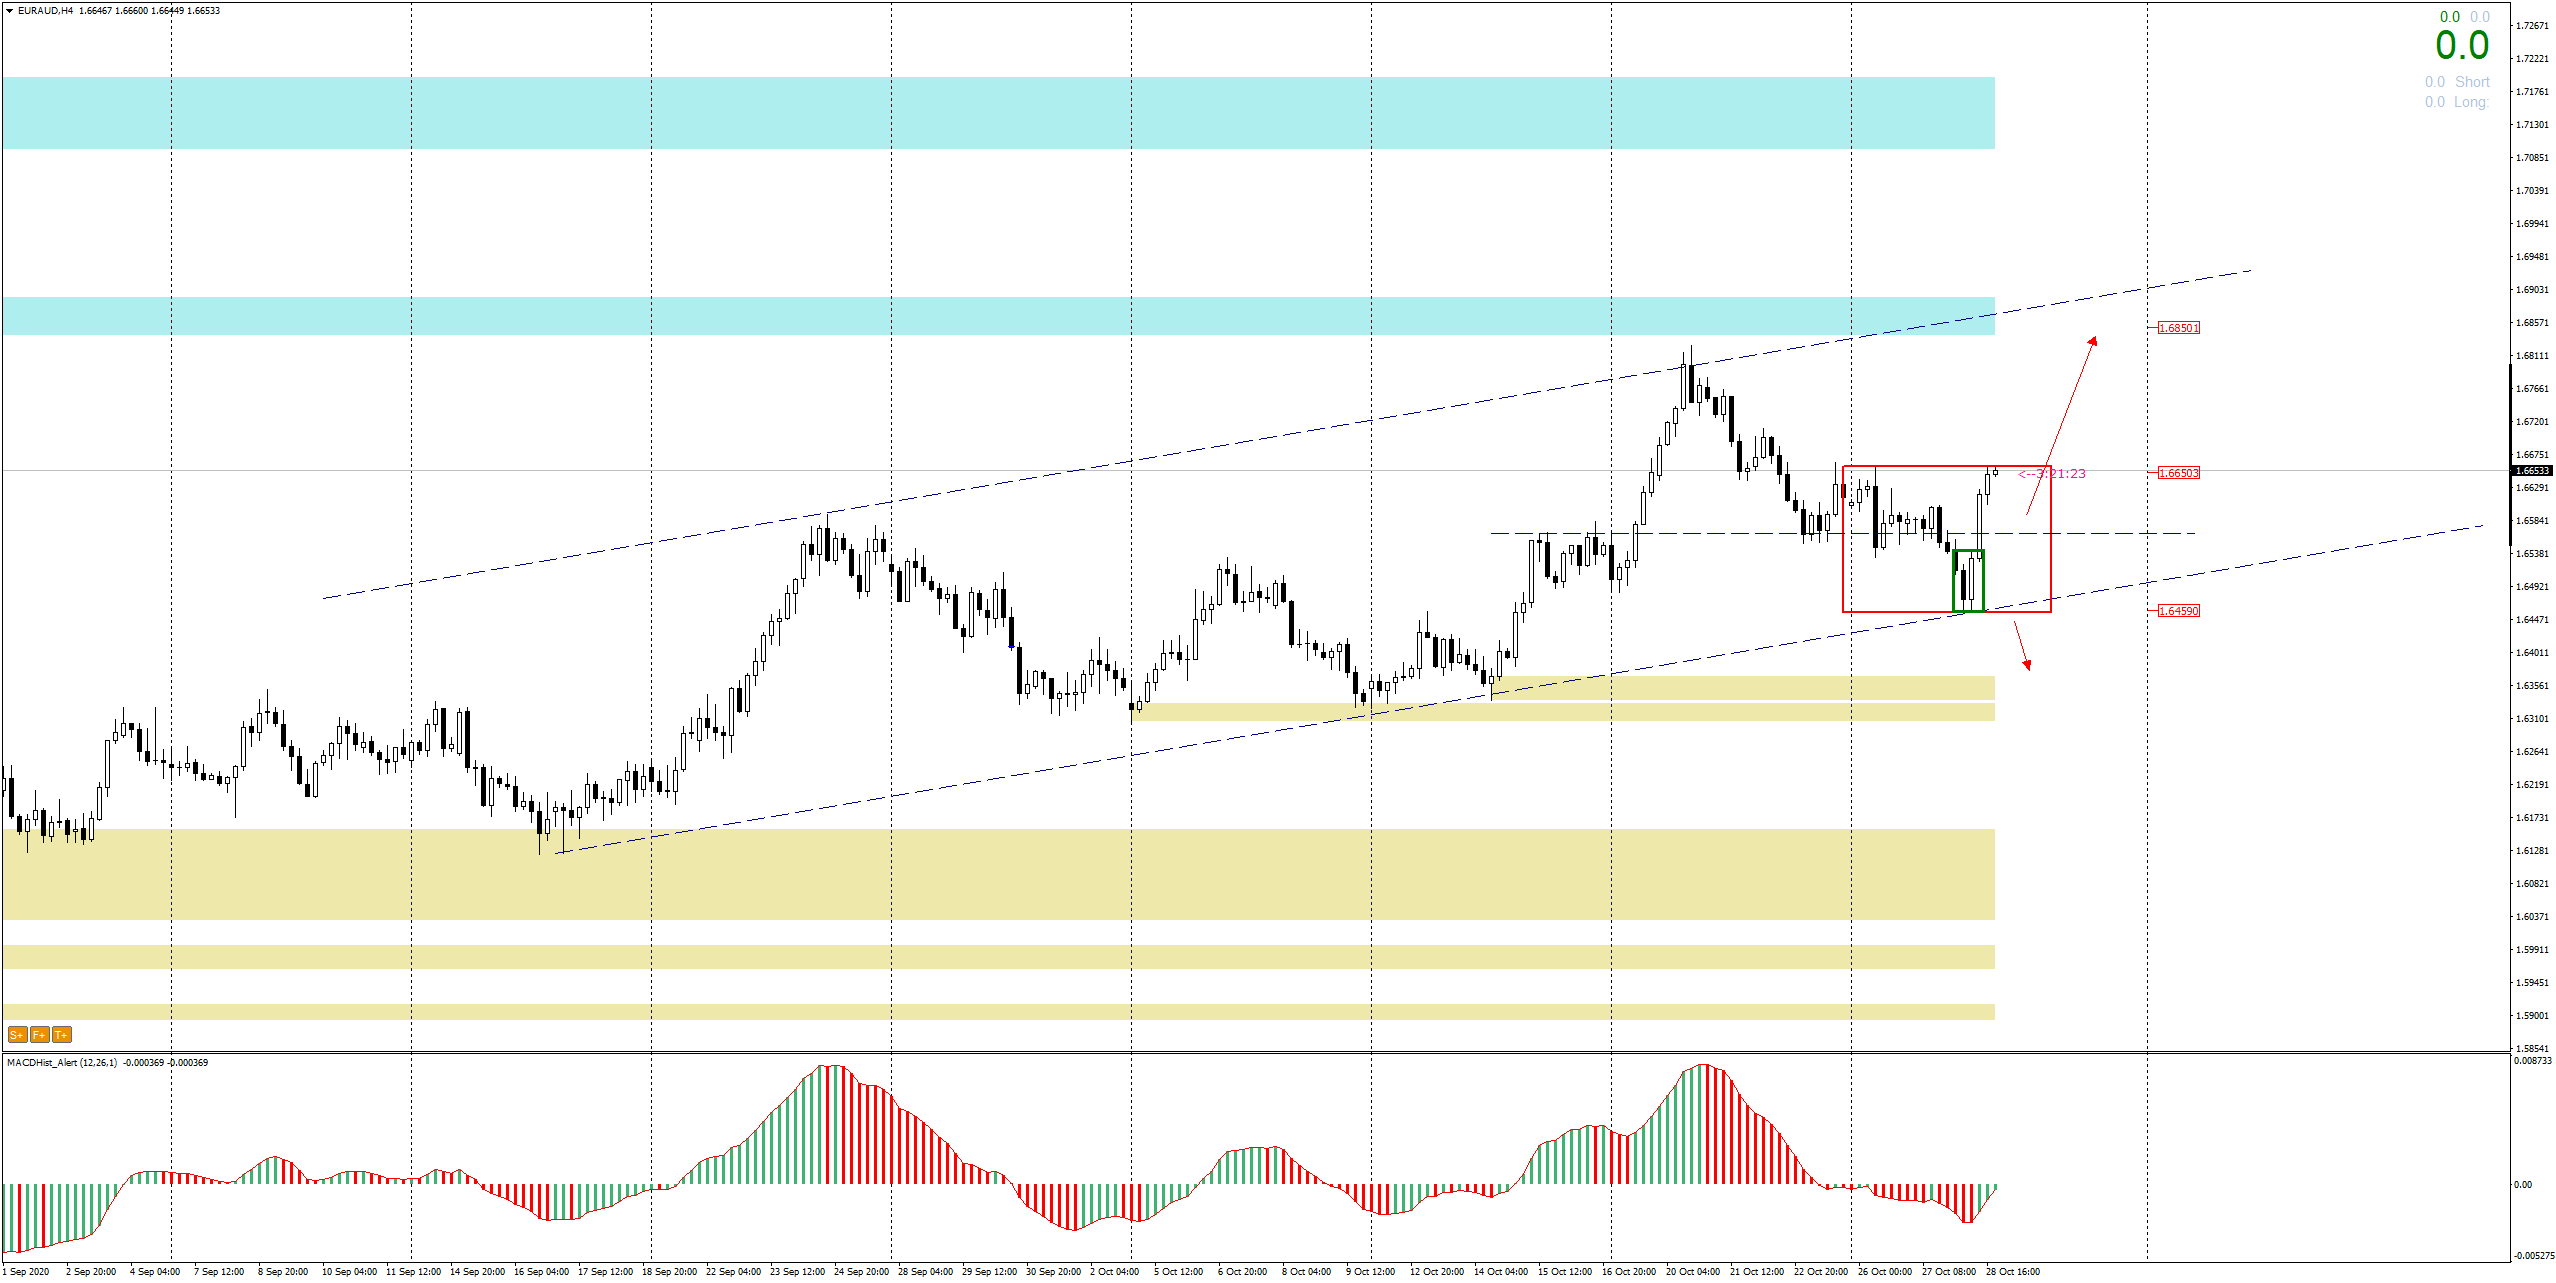 EURAUD H4 - small bullish engulfing (green rectangle) in the large (red rectangle)